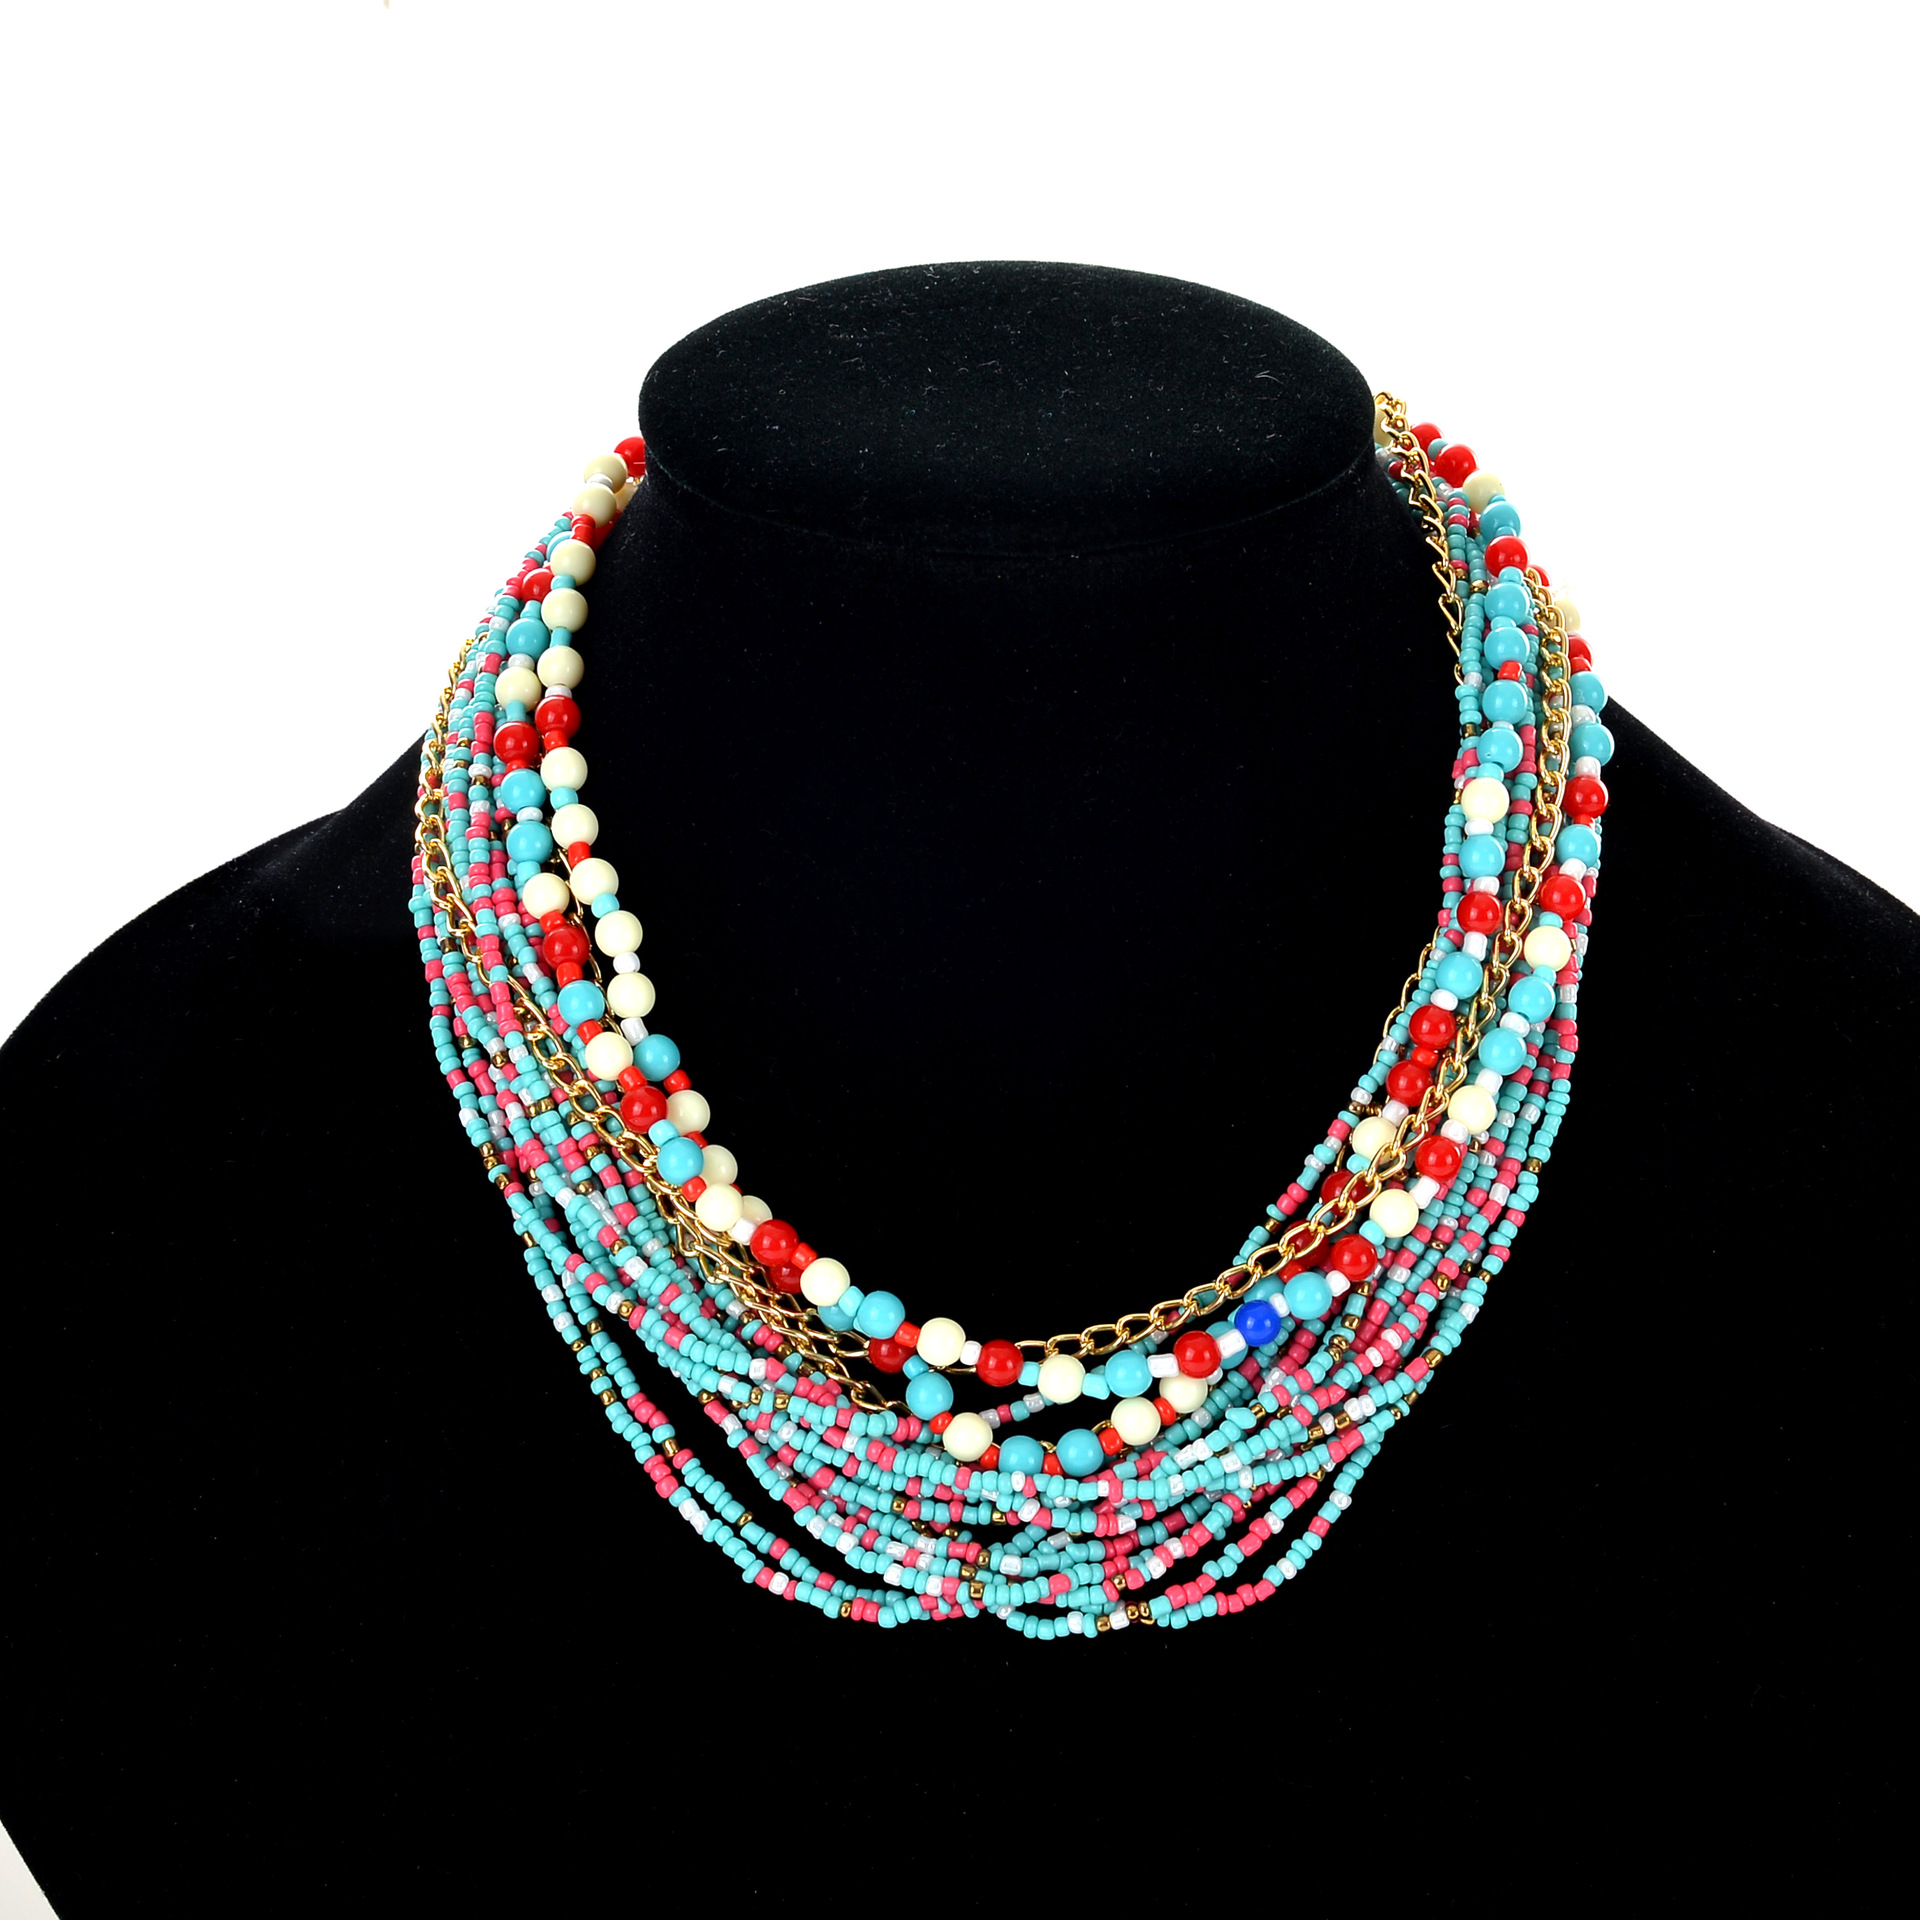 Colsen Fashion European And American Style Jewelry Women Elegant Handmade Beaded Necklace